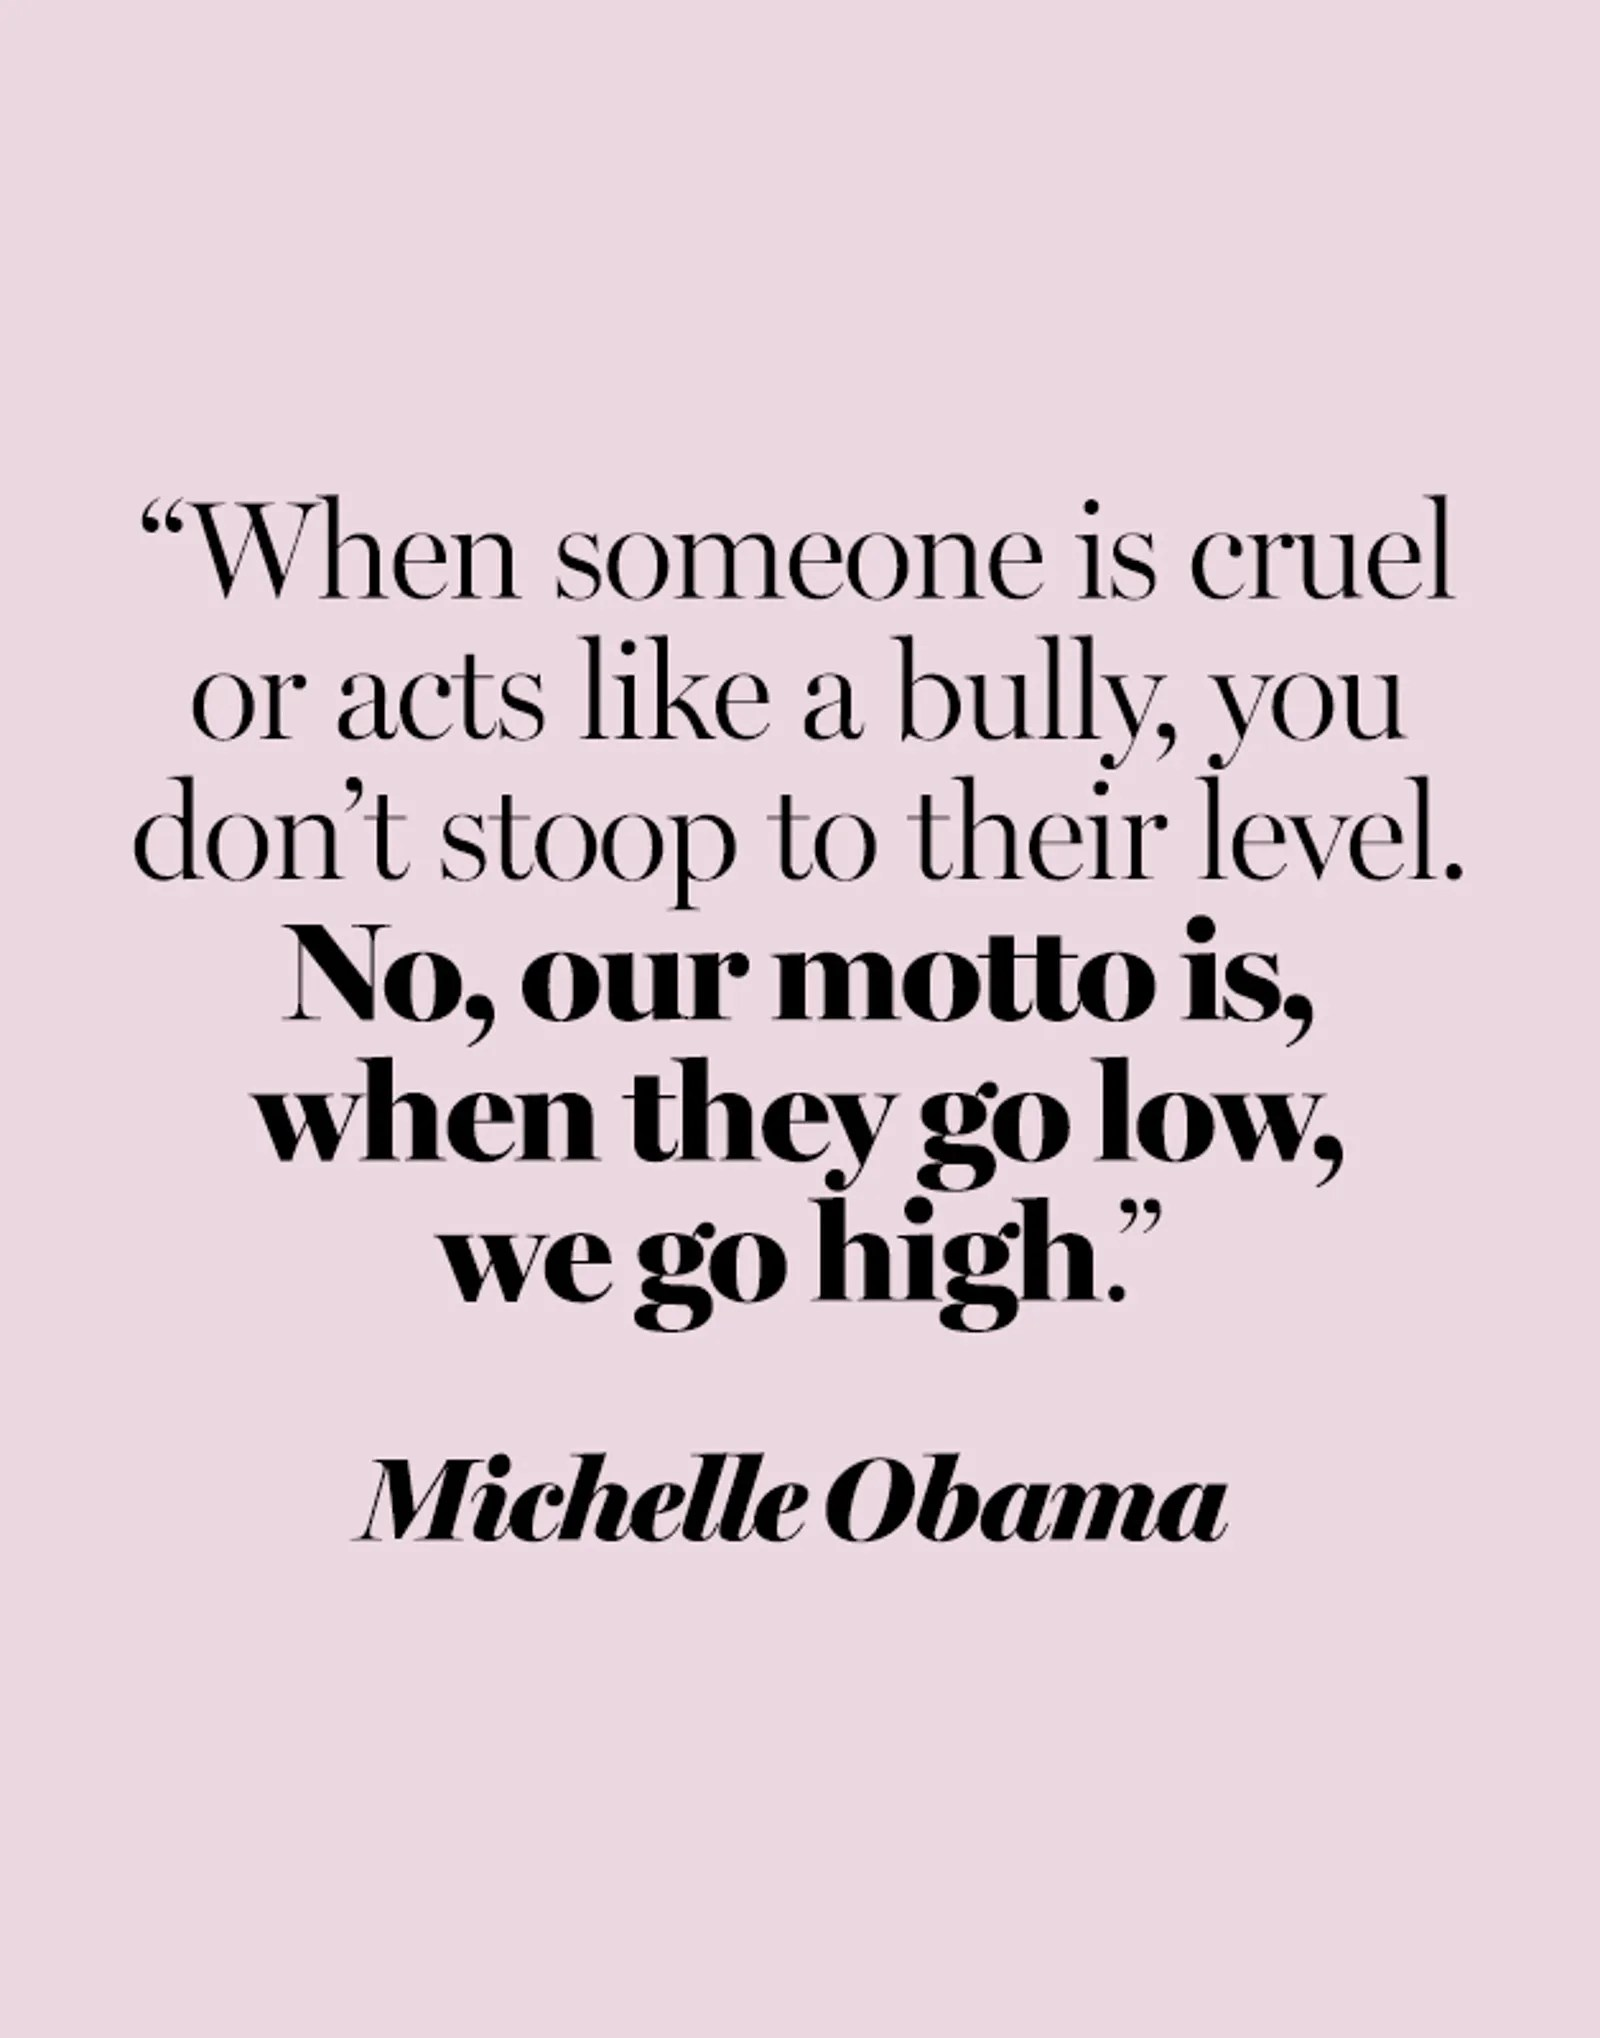 10 Michelle Obama Quotes We Need Now More Than Ever